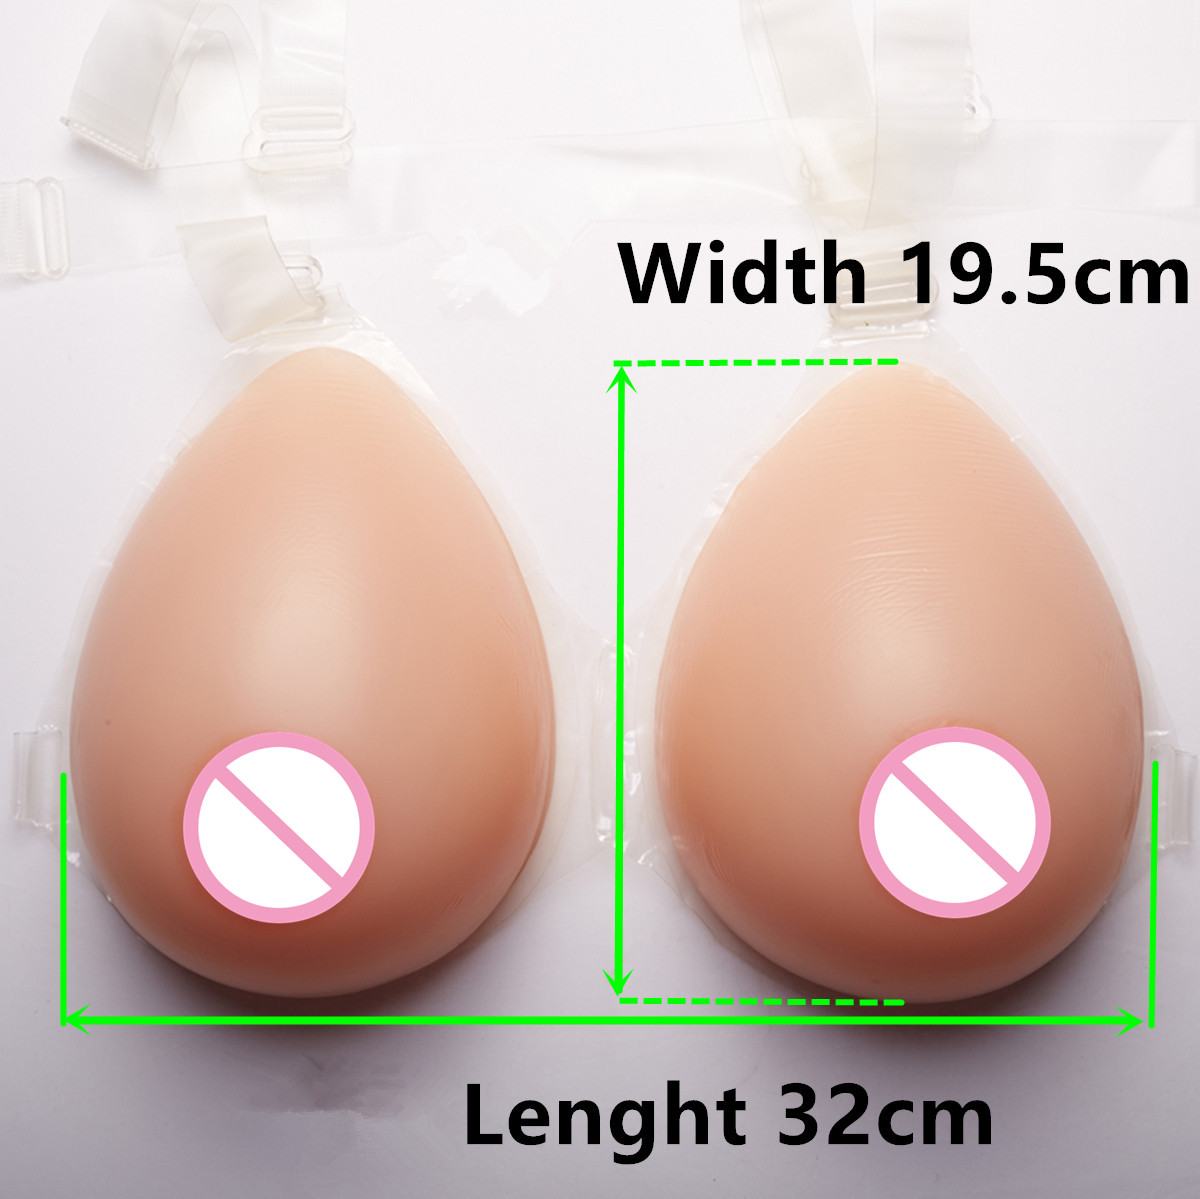 Artificial Breast Fake Breast 2000g/pair Conjoined Breast Boobs Crossdresser Drag Queen Real Breast Forms 2000g pair h i cup huge sexy cross dressing artificial silicon boobs shemale or crossdresser silicone breast forms prothetics